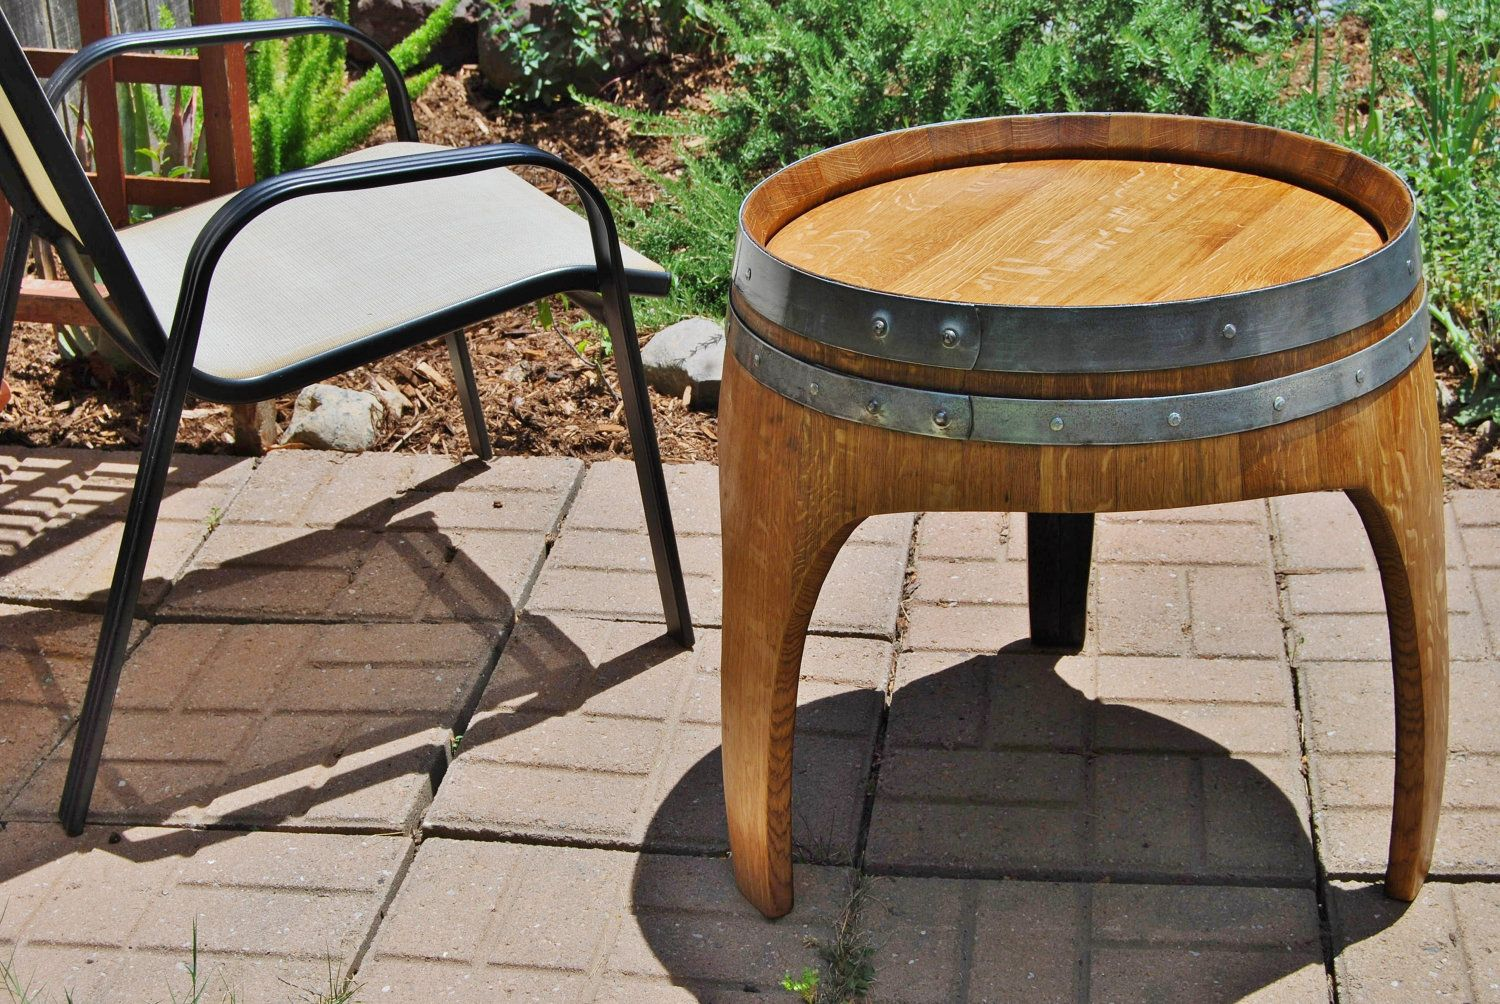 Wine Barrel Arched End Table with 3 Legs from Napa Valley Garden